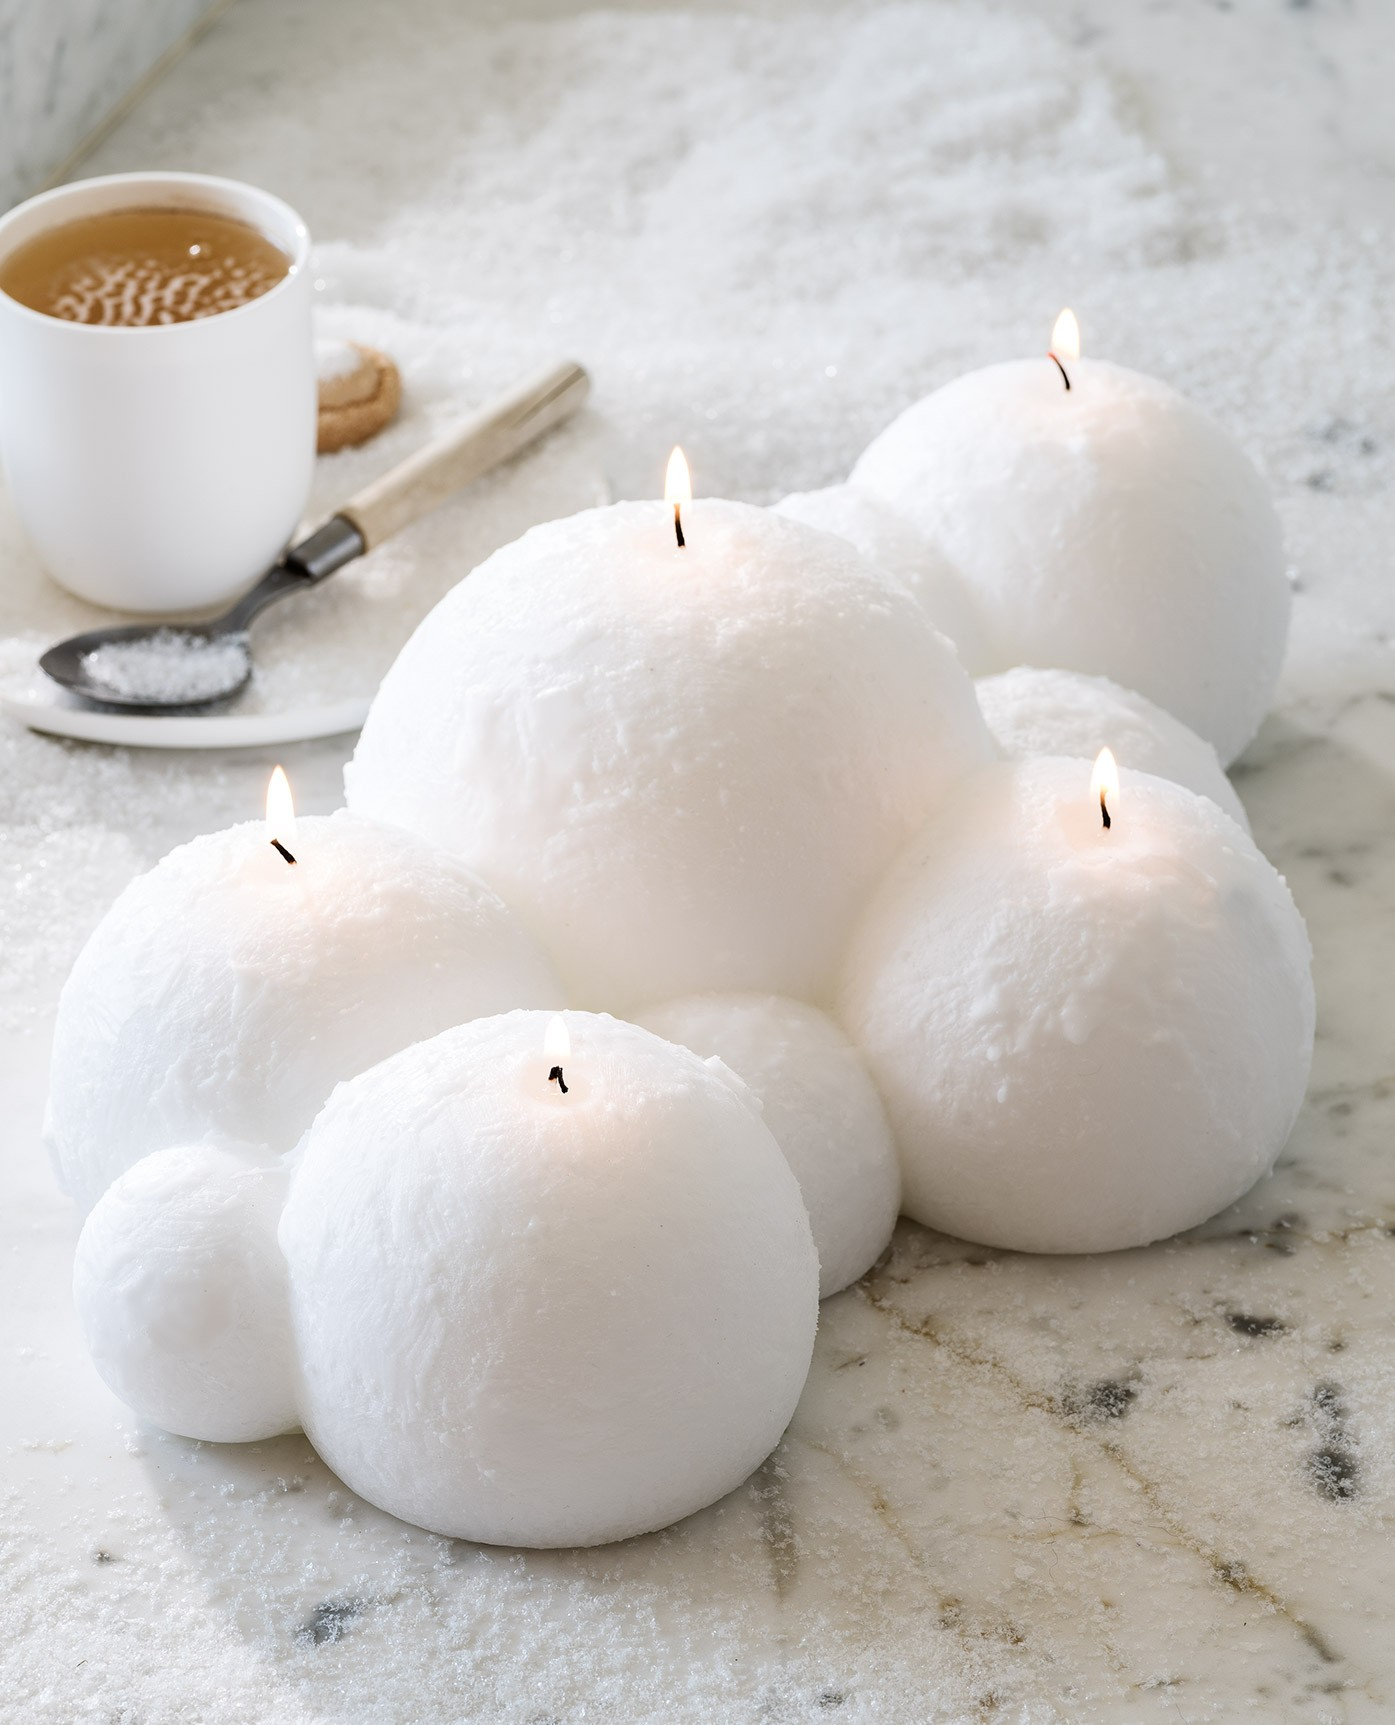 bougie-decorative-centre-de-table-boules-de-neige-39cm-blanc